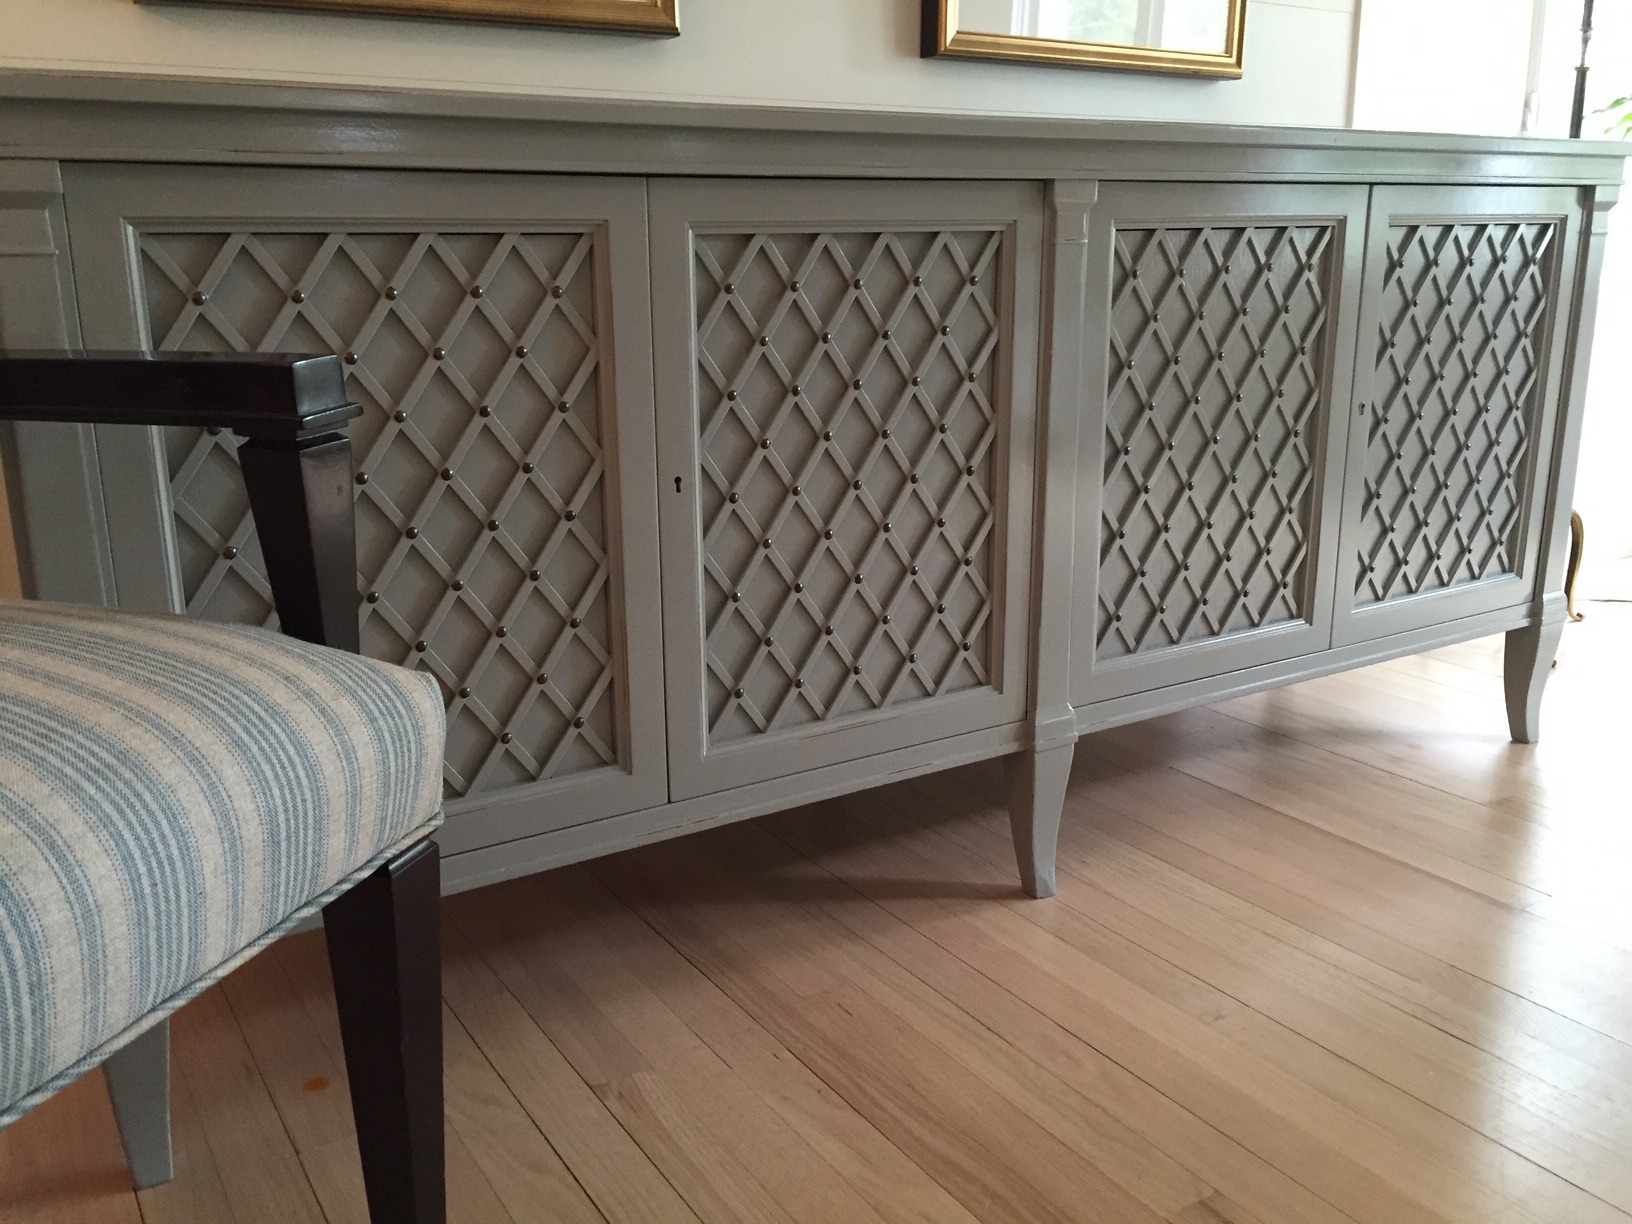 I had an old mahogany credenza with sliding lattice doors that looked right out of the fifties, and indeed it had been handed down for three generations, grandma to mother to me. It reeked of stodginess when placed in my All White living room, but as heavy and musty looking as it was I couldn't part with it. So I decided to paint it with Farrow & Ball's deep and lovely Manor House Grey, a color that looks striking against white and fits nicely with other furniture in beiges, blacks, browns, and color. The piece now gives the room a modern cool, a kind of industrial chic. Candlesticks, vases, books, anything I put on it pops with its own character now. Aged brass pulls compliment the cool with just the right touch of age and history.